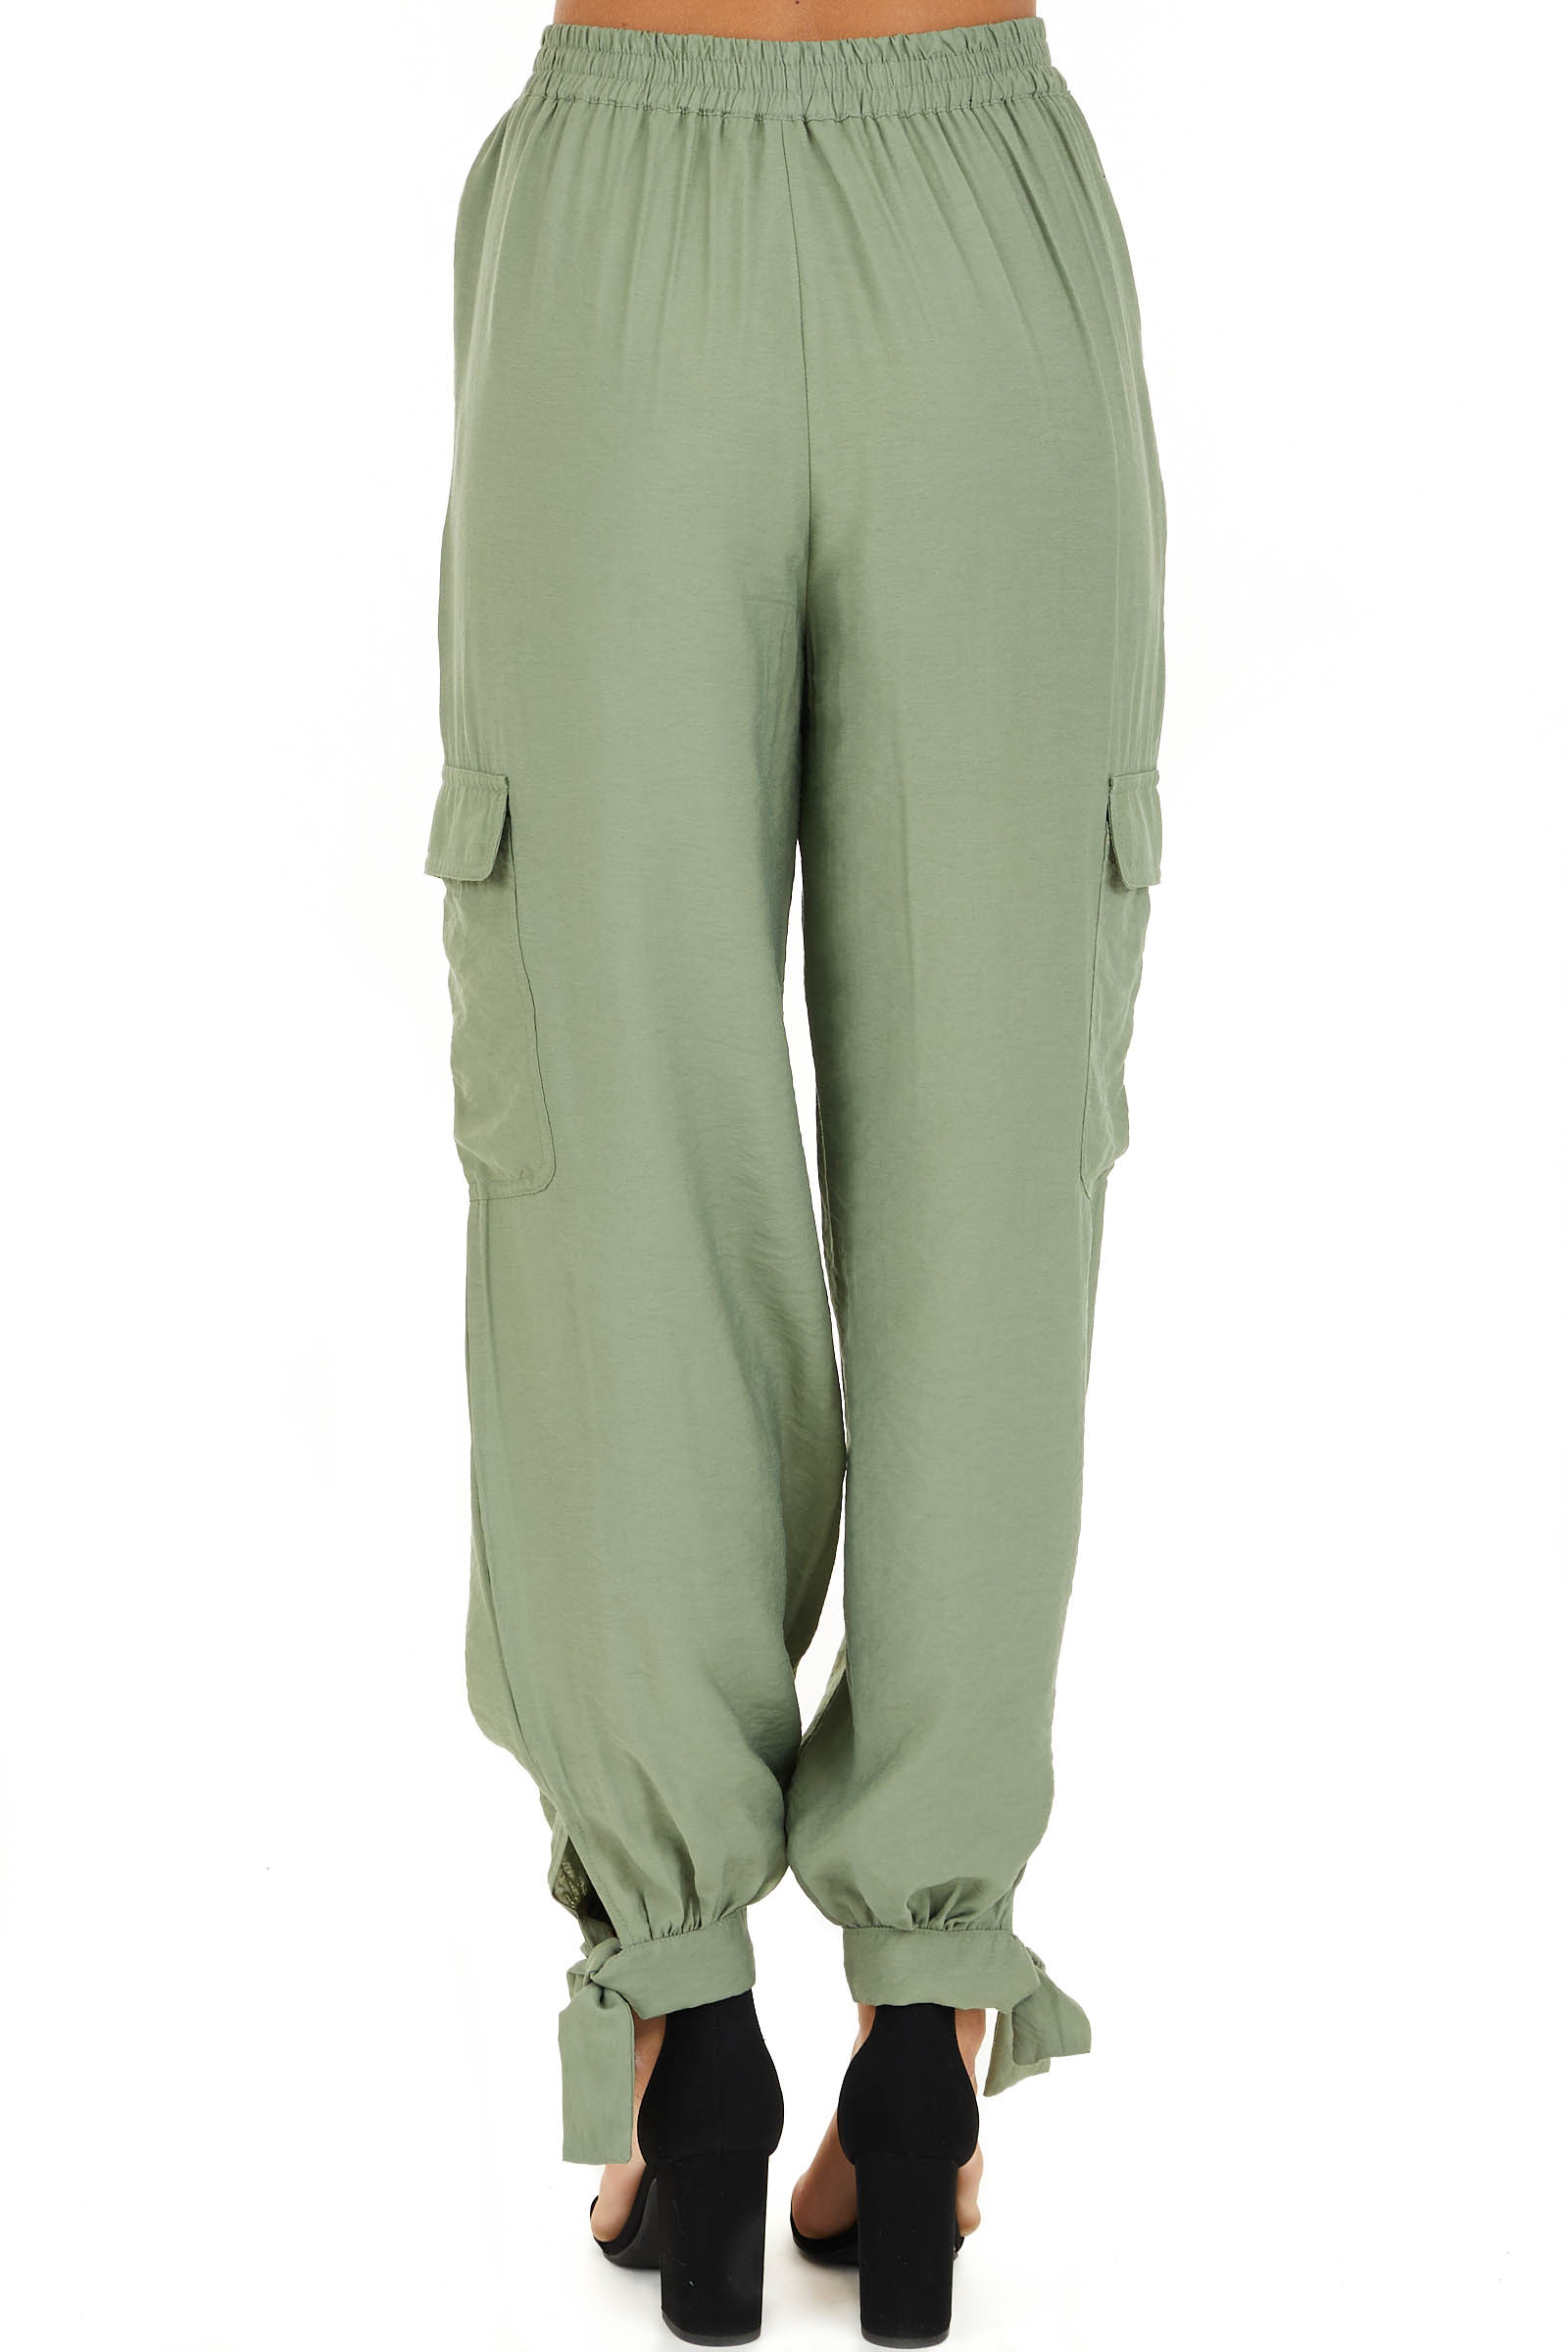 Pistachio Green High Waisted Cargo Pants with Ankle Ties back view